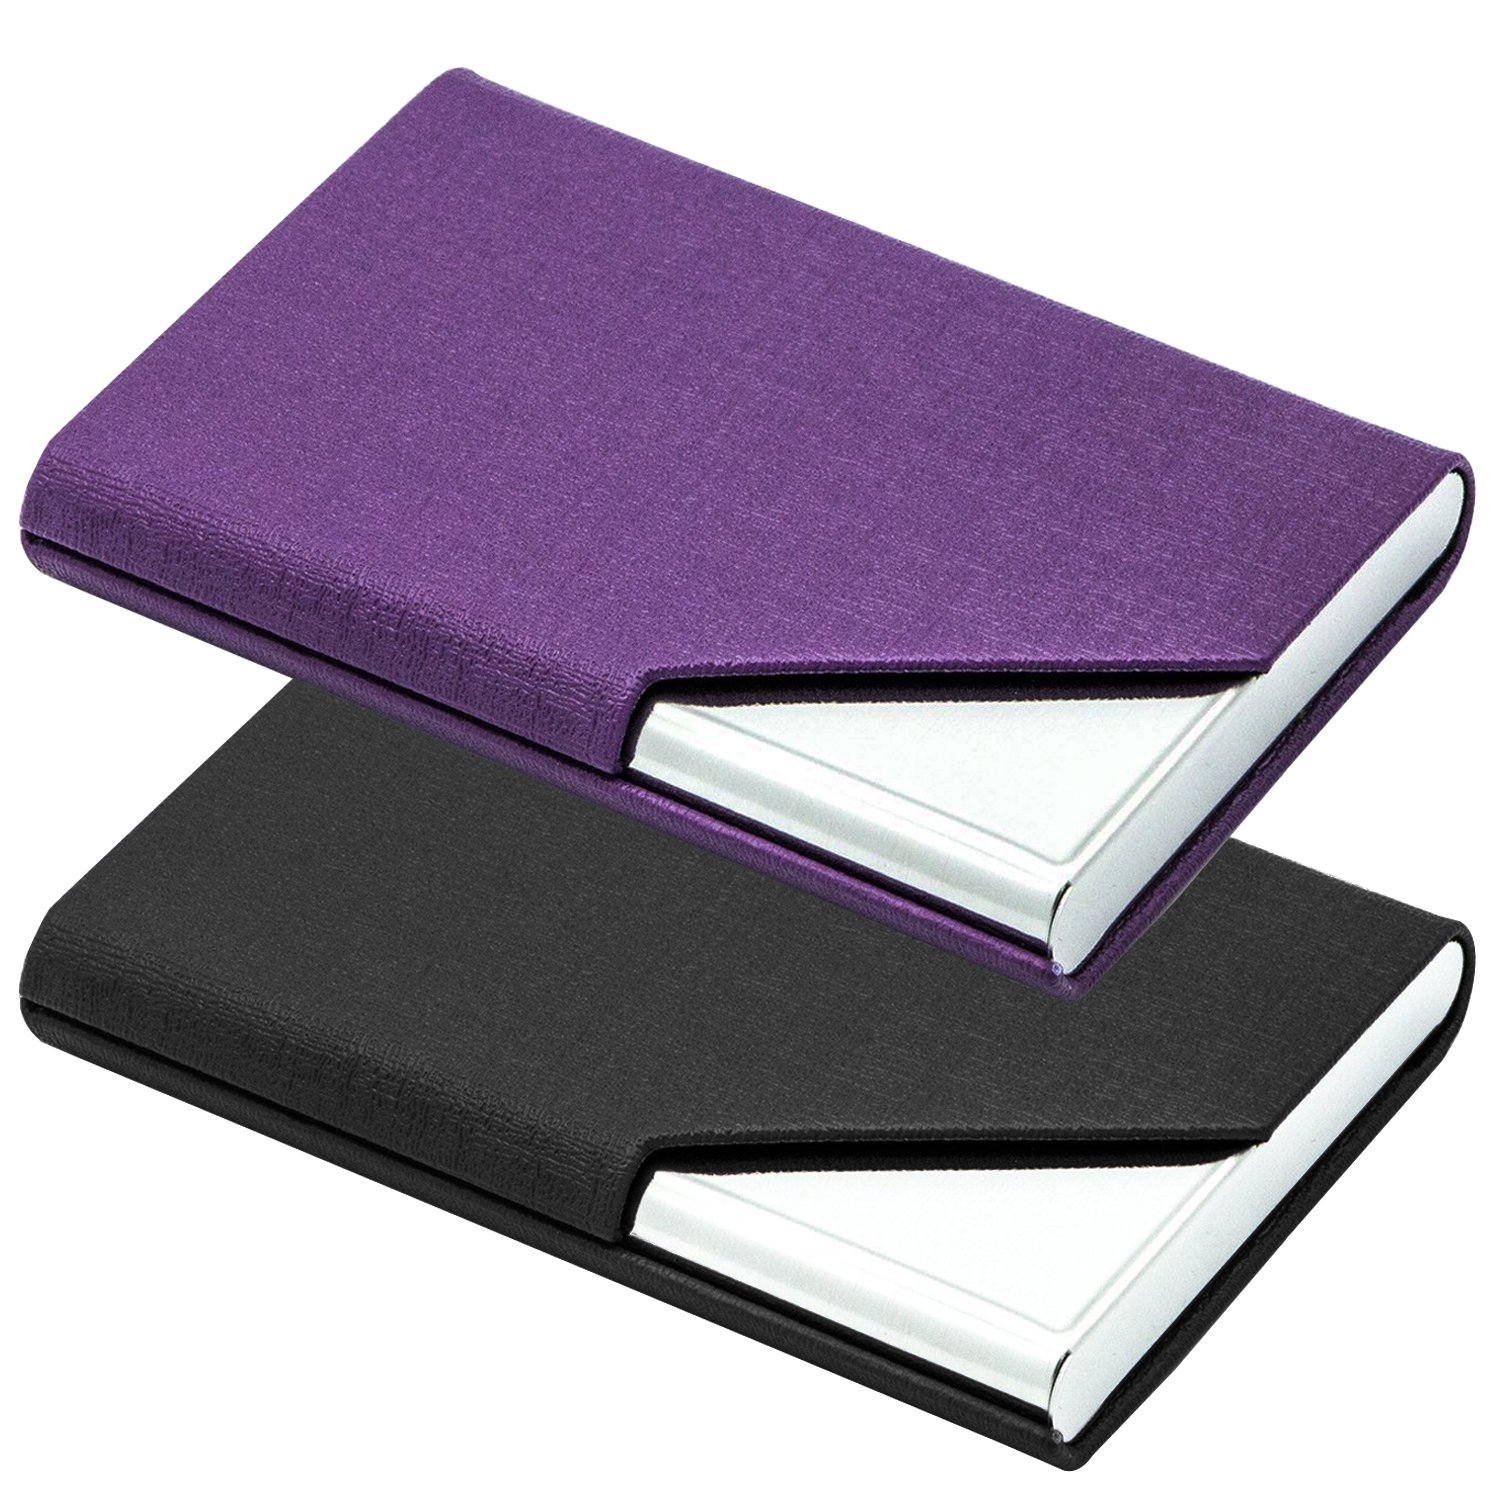 2 PCS Business Name Card Cases, Stainless Steel & PU Leather Card Holder, SENHAI Square Metal ID Wallets for Men & Women, with Magnet Shut - Black & Purple